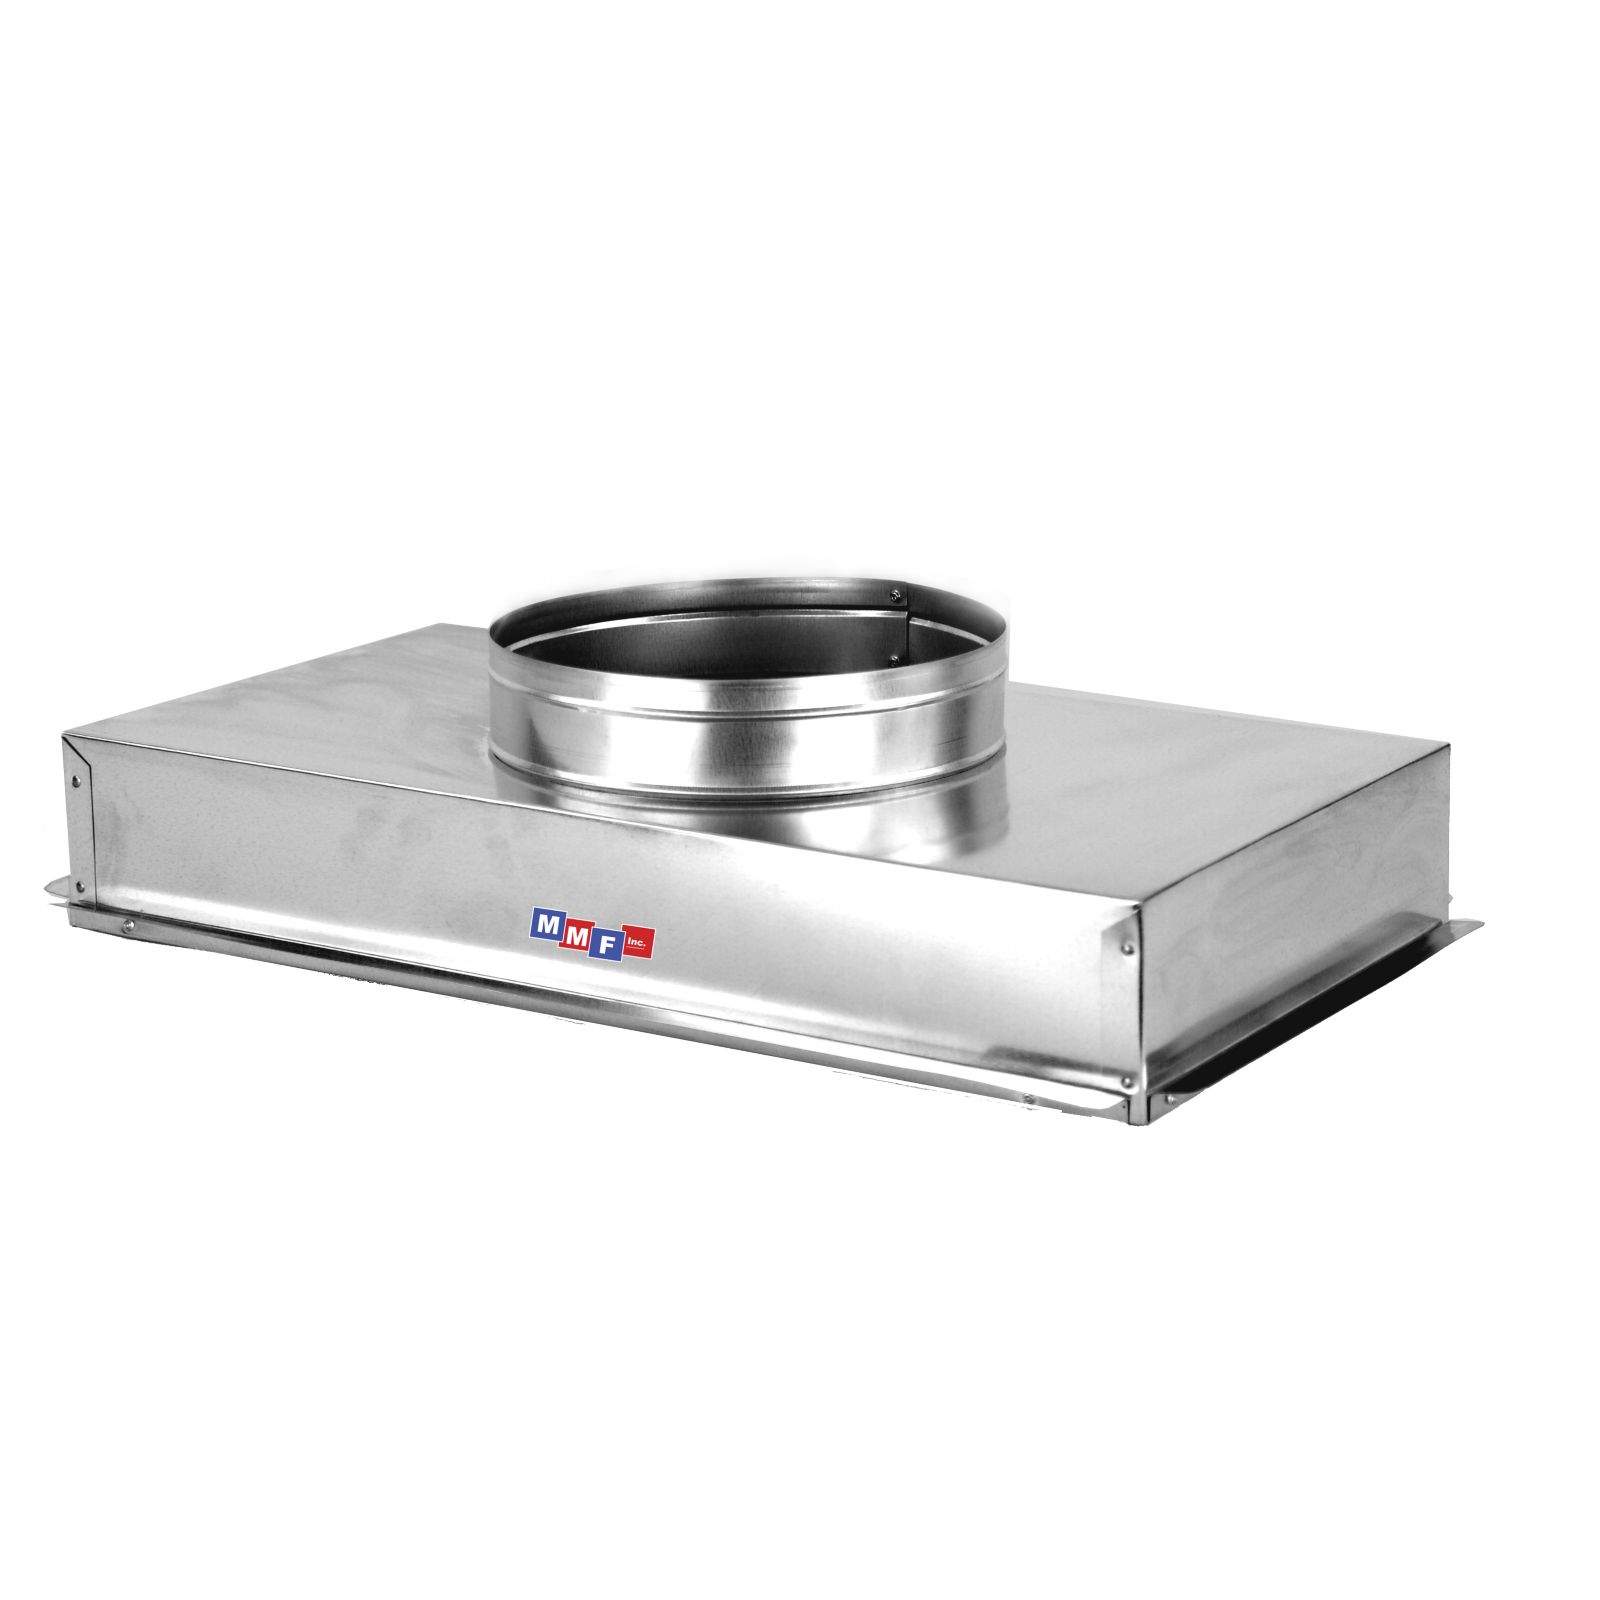 "Modular Metal ACRH2222AD - Return Air Can - 28 Gauge - Uninsulated - 1/2"" Flong22 1/4"" X 22 1/4"" No Collar-6"" High"